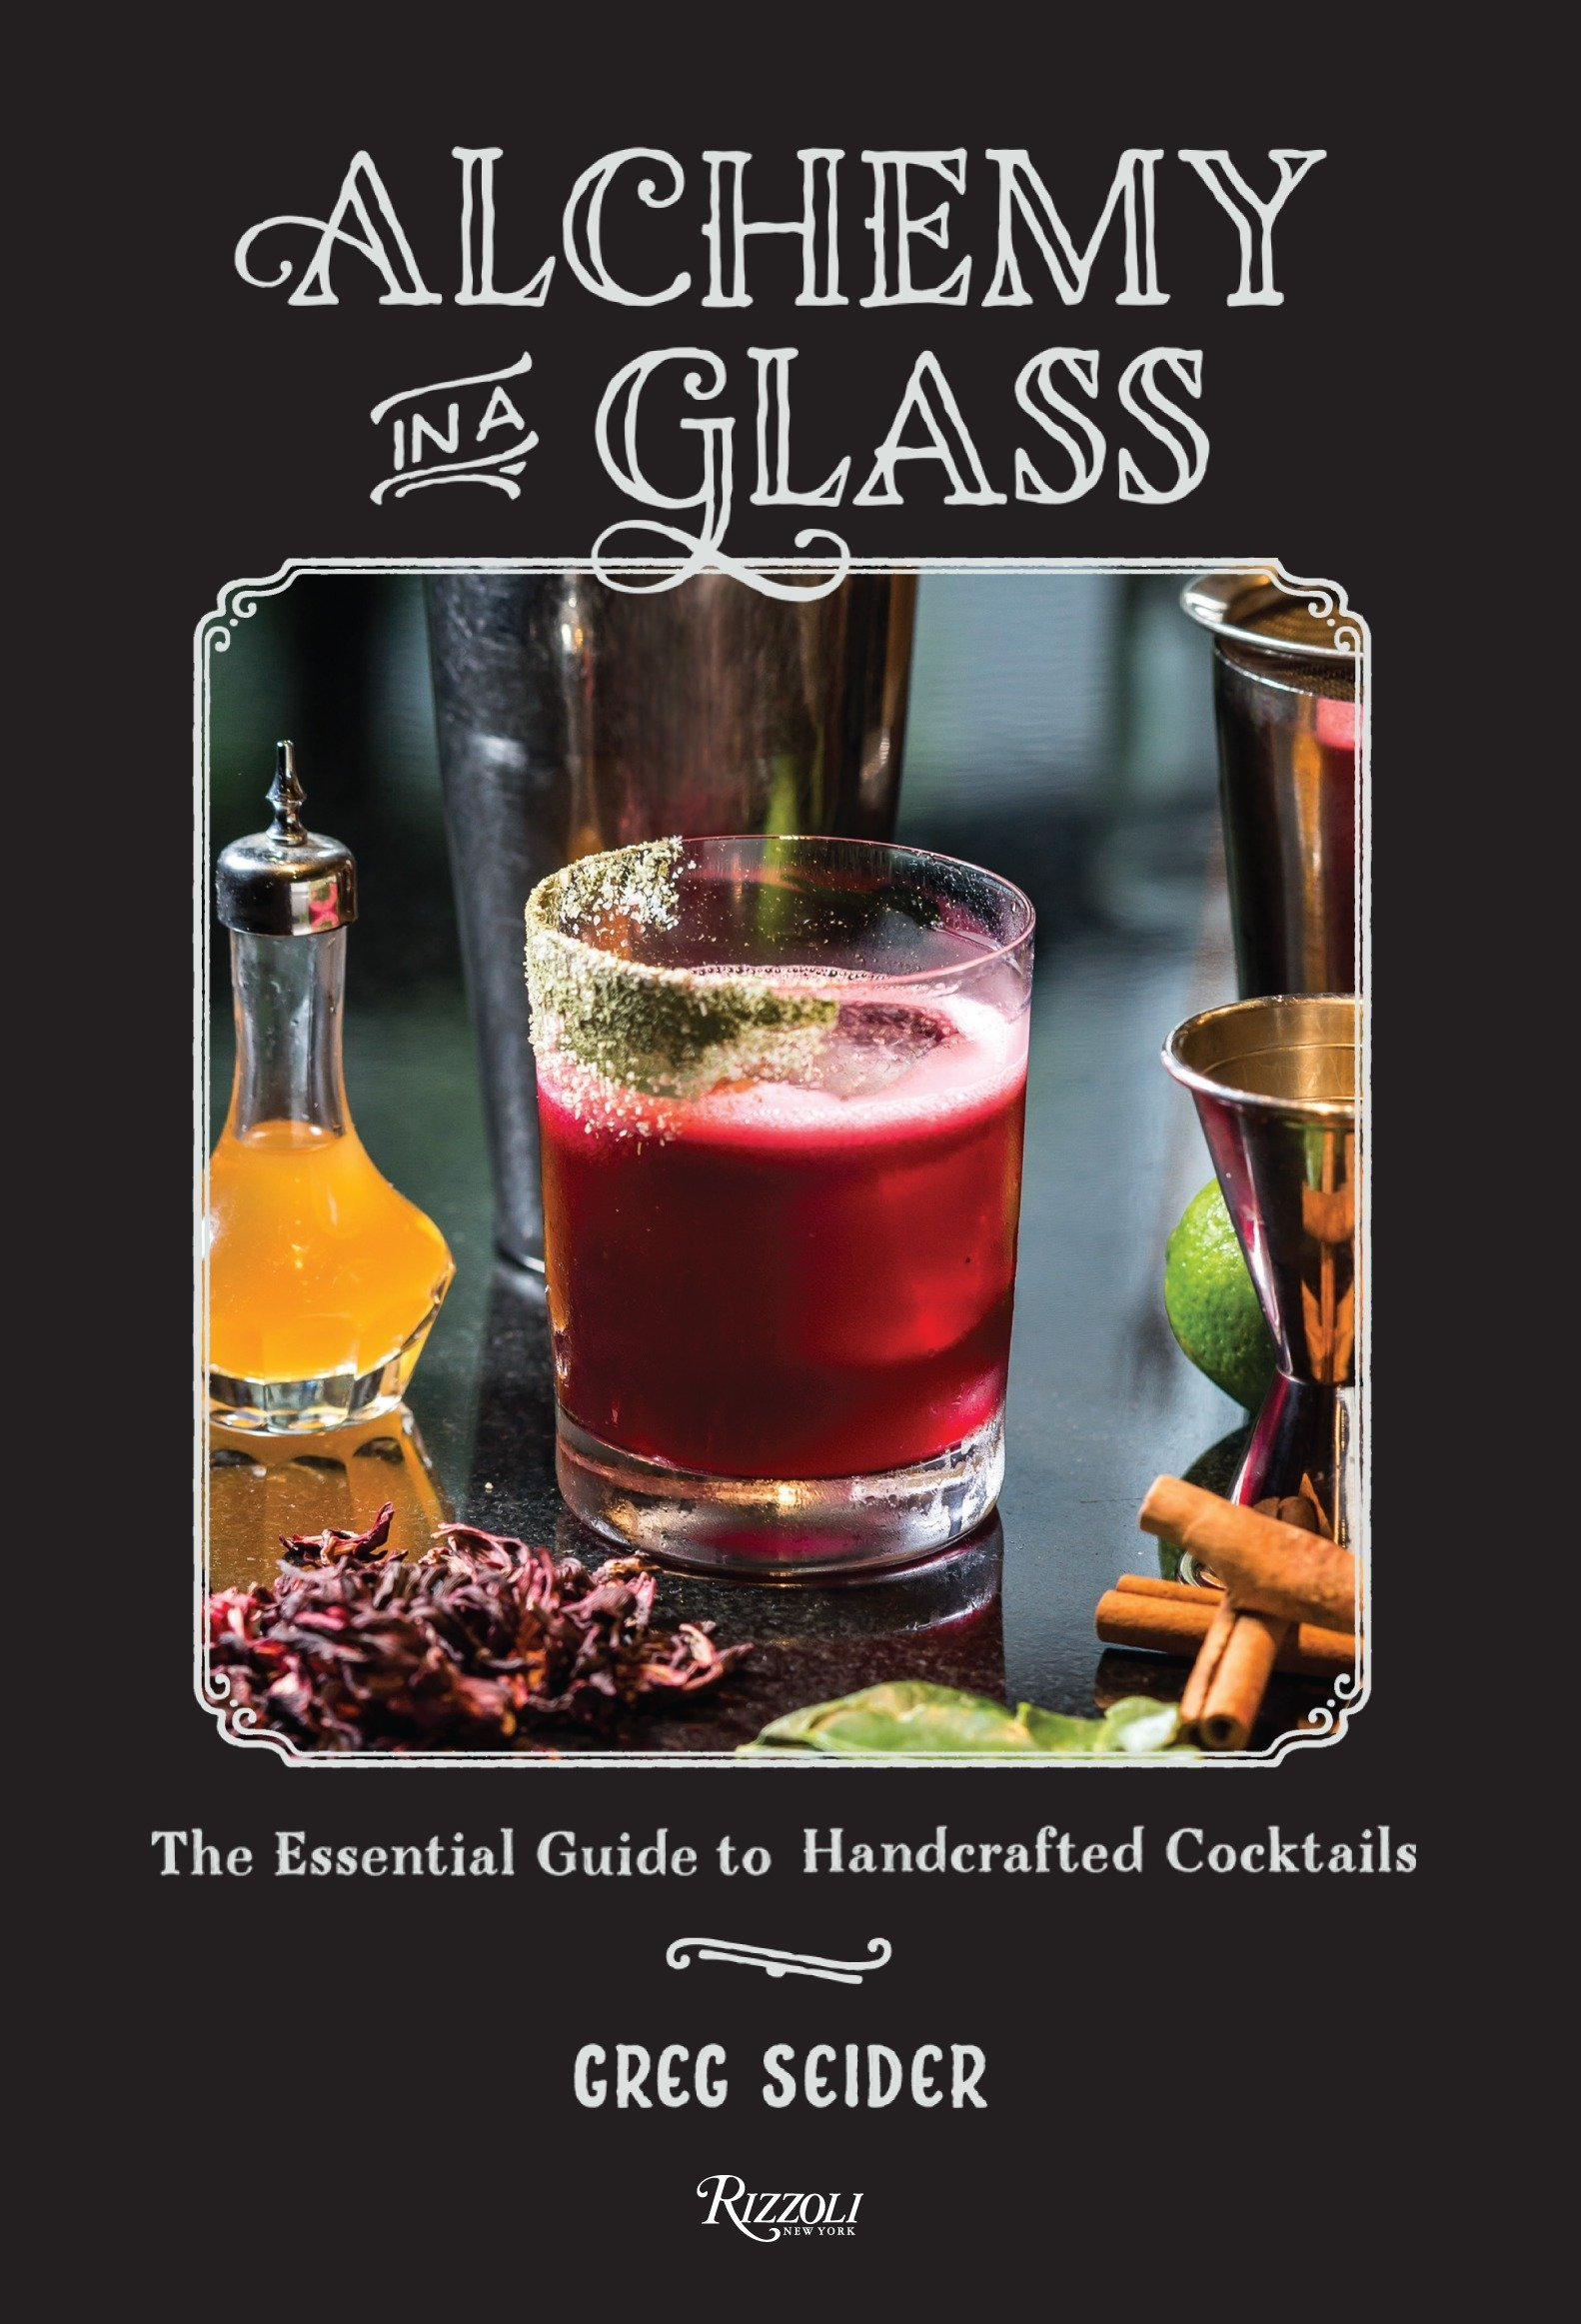 Alchemy in a Glass: The Essential Guide to Handcrafted Cocktails PDF